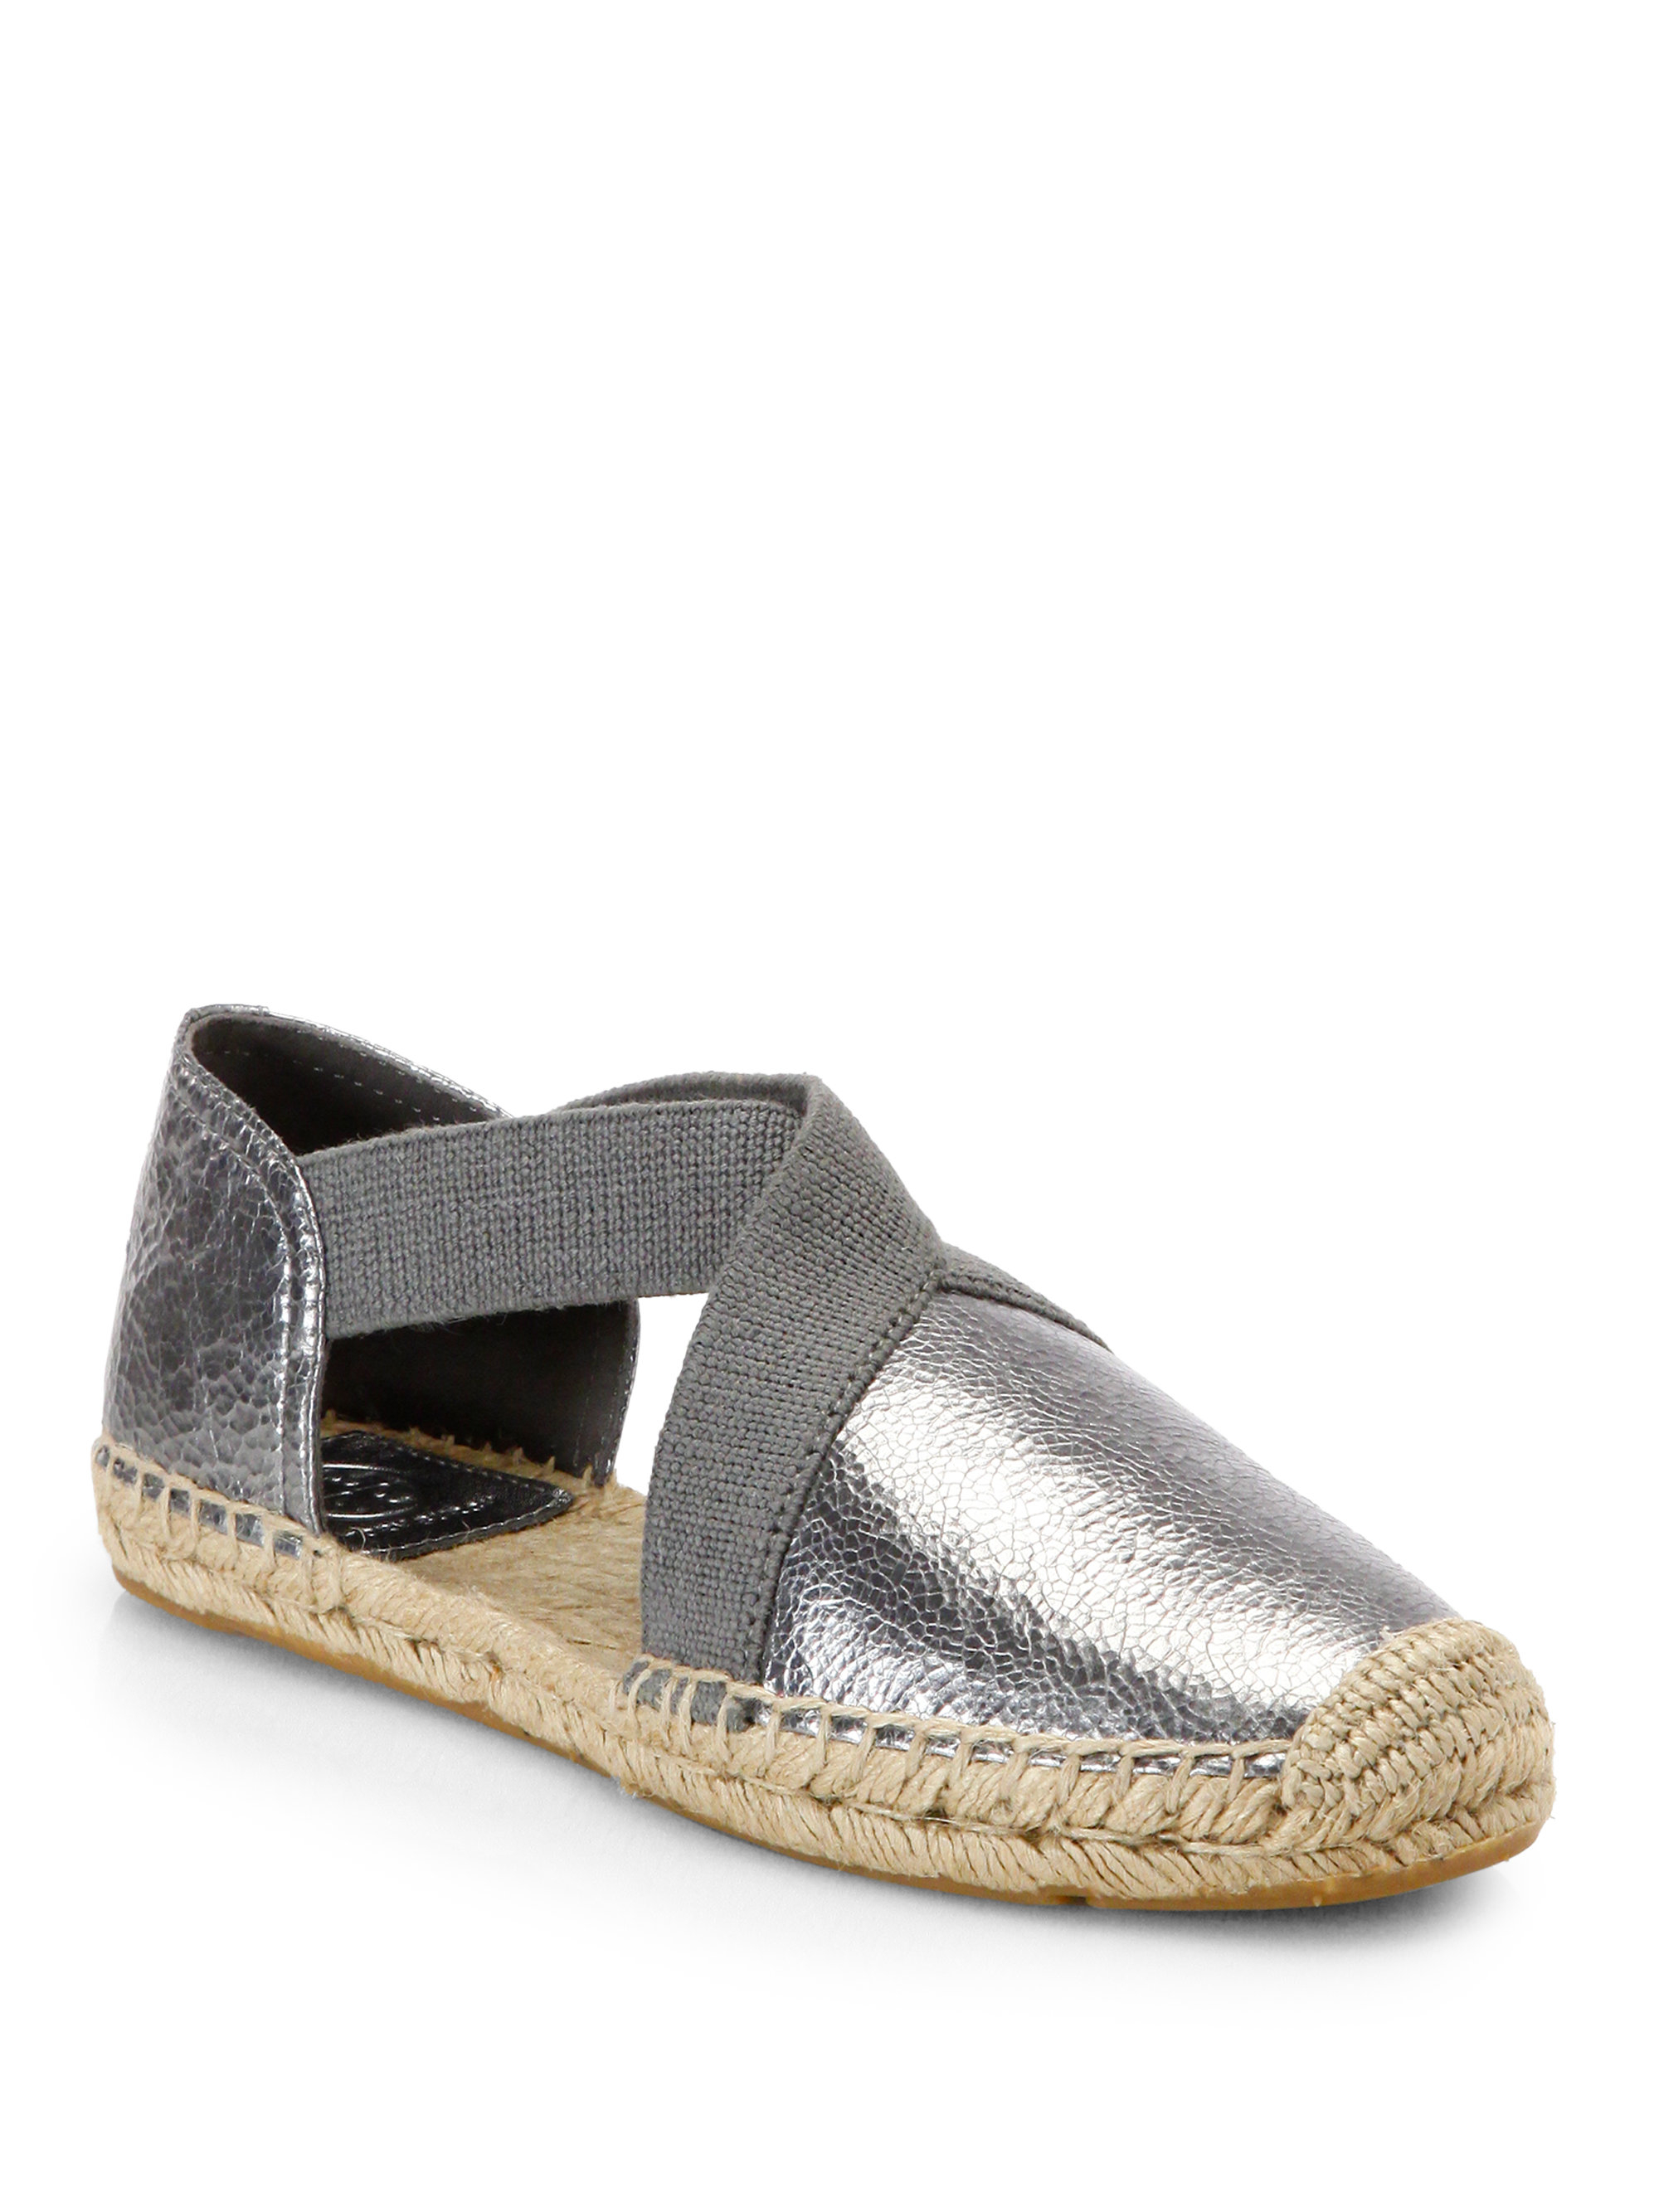 495d16365050 Lyst - Tory Burch Catalina Metallic Leather Espadrille Flats in Gray